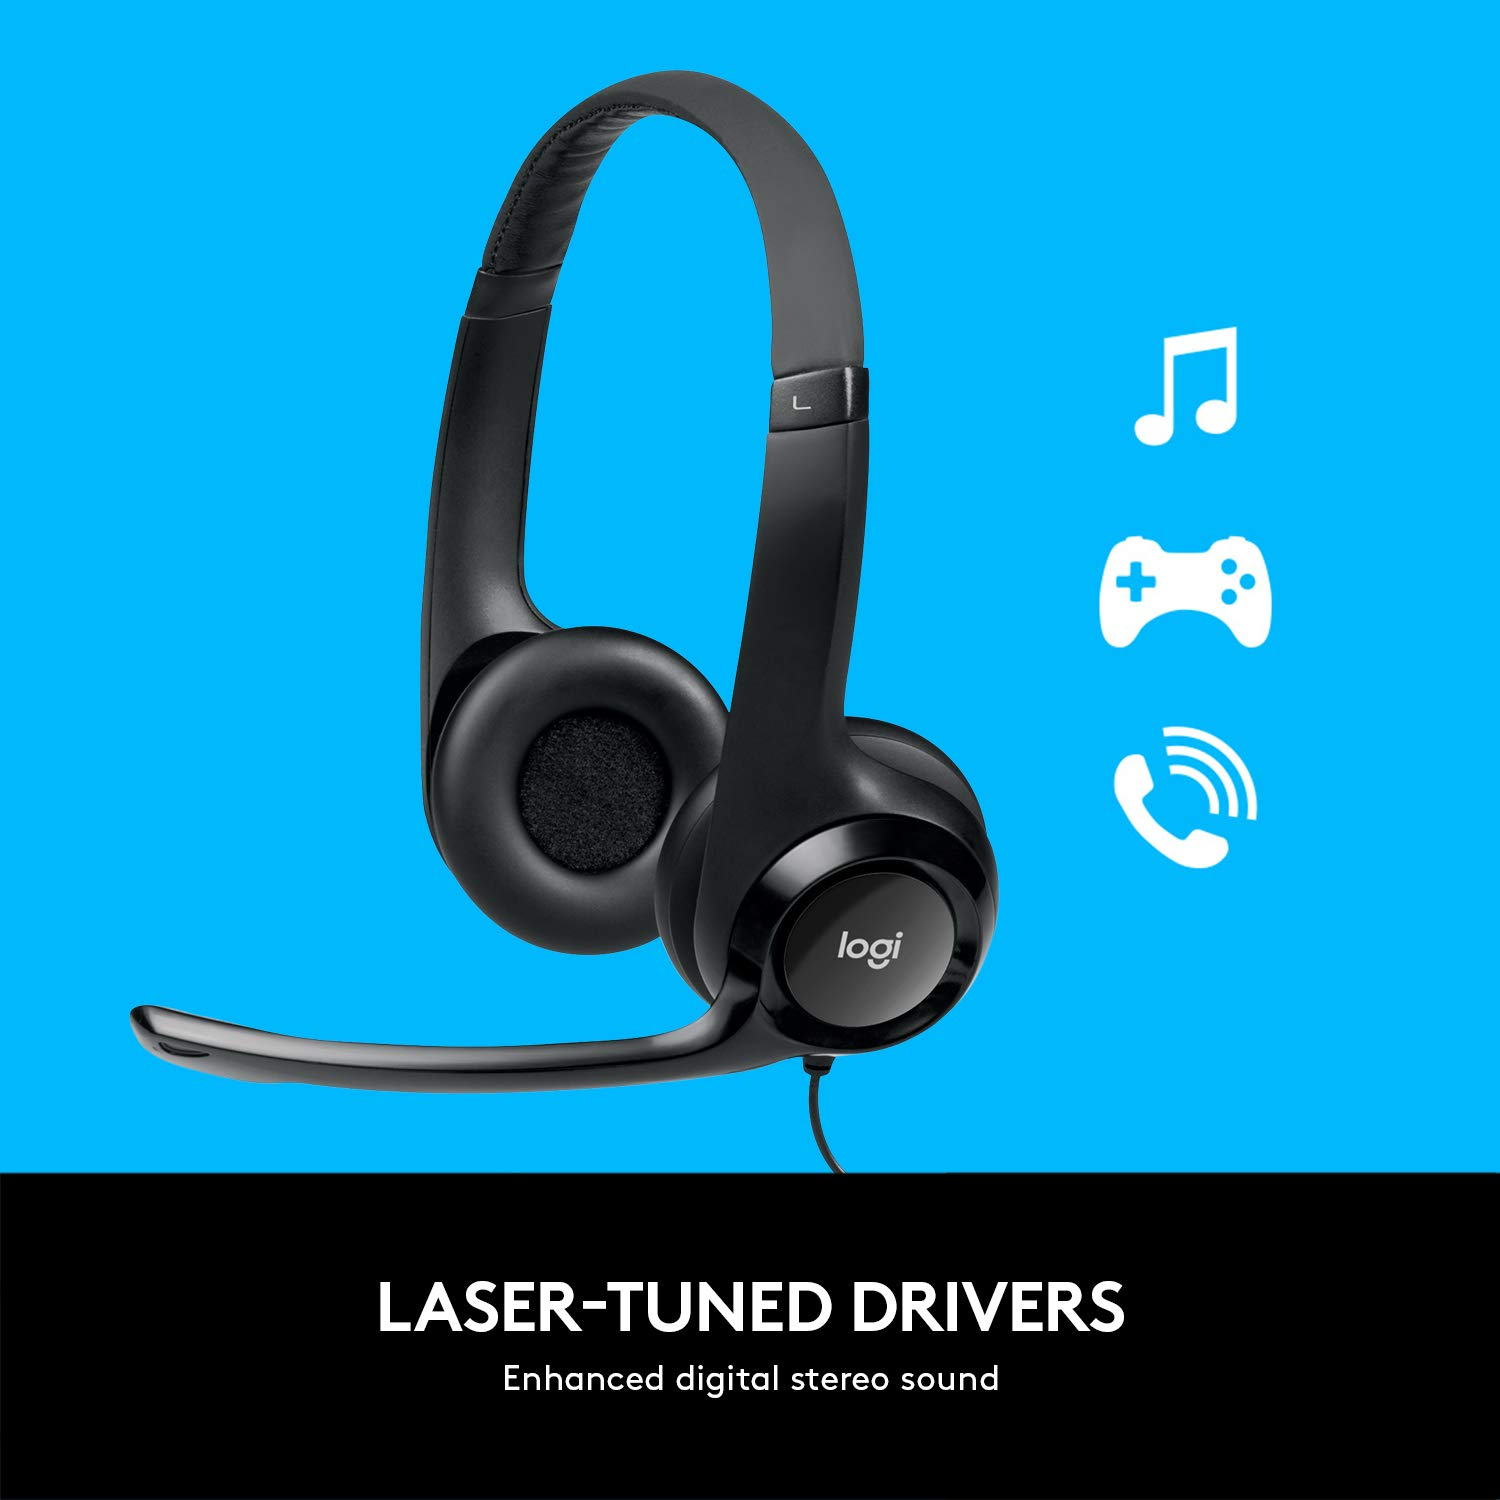 Amazon.com: Logitech USB Headset H390 with Noise Cancelling Mic ...